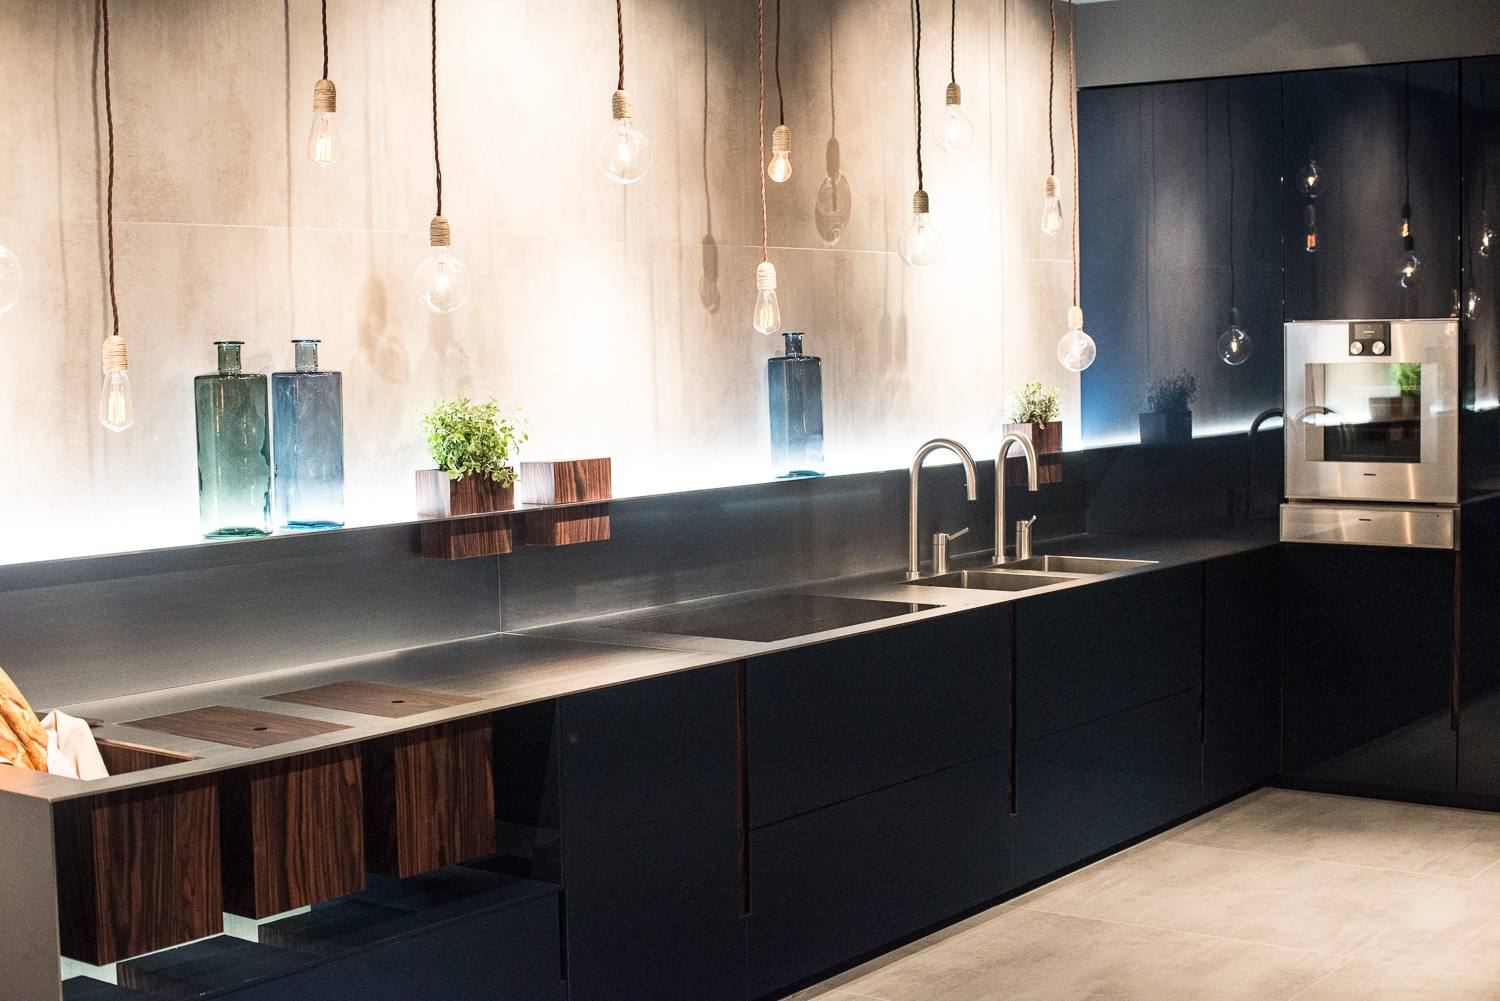 Light bulbs hanging in modern kitchen